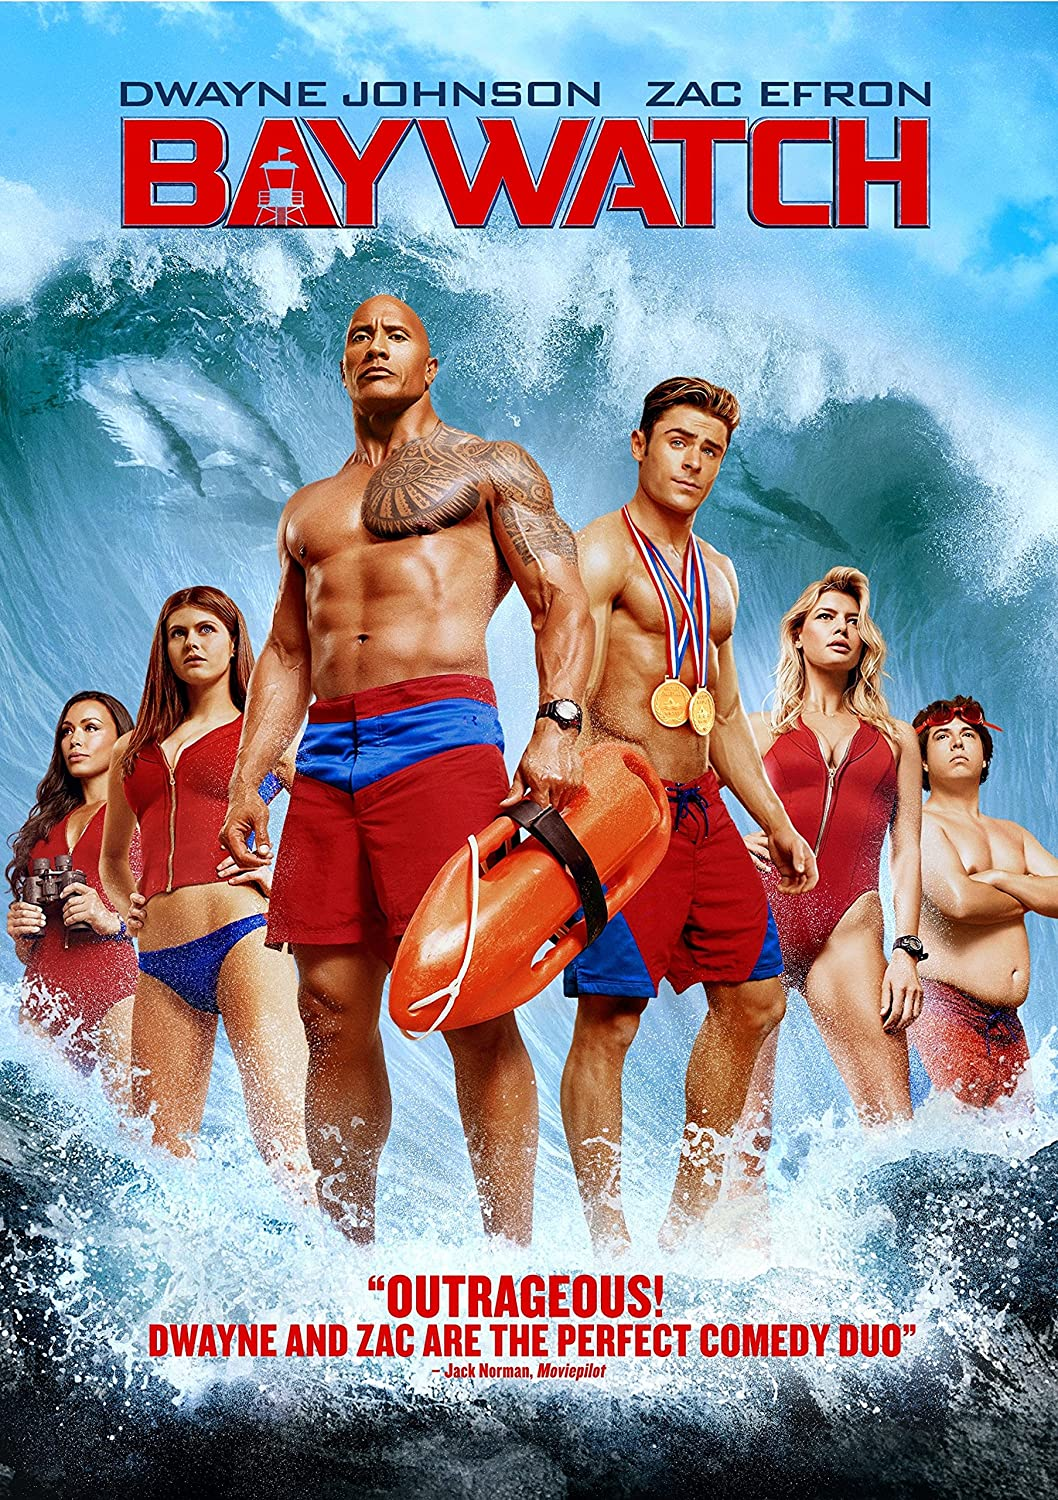 Baywatch Zac Efron Alexandra Daddario Seth Gordon Movies Tv